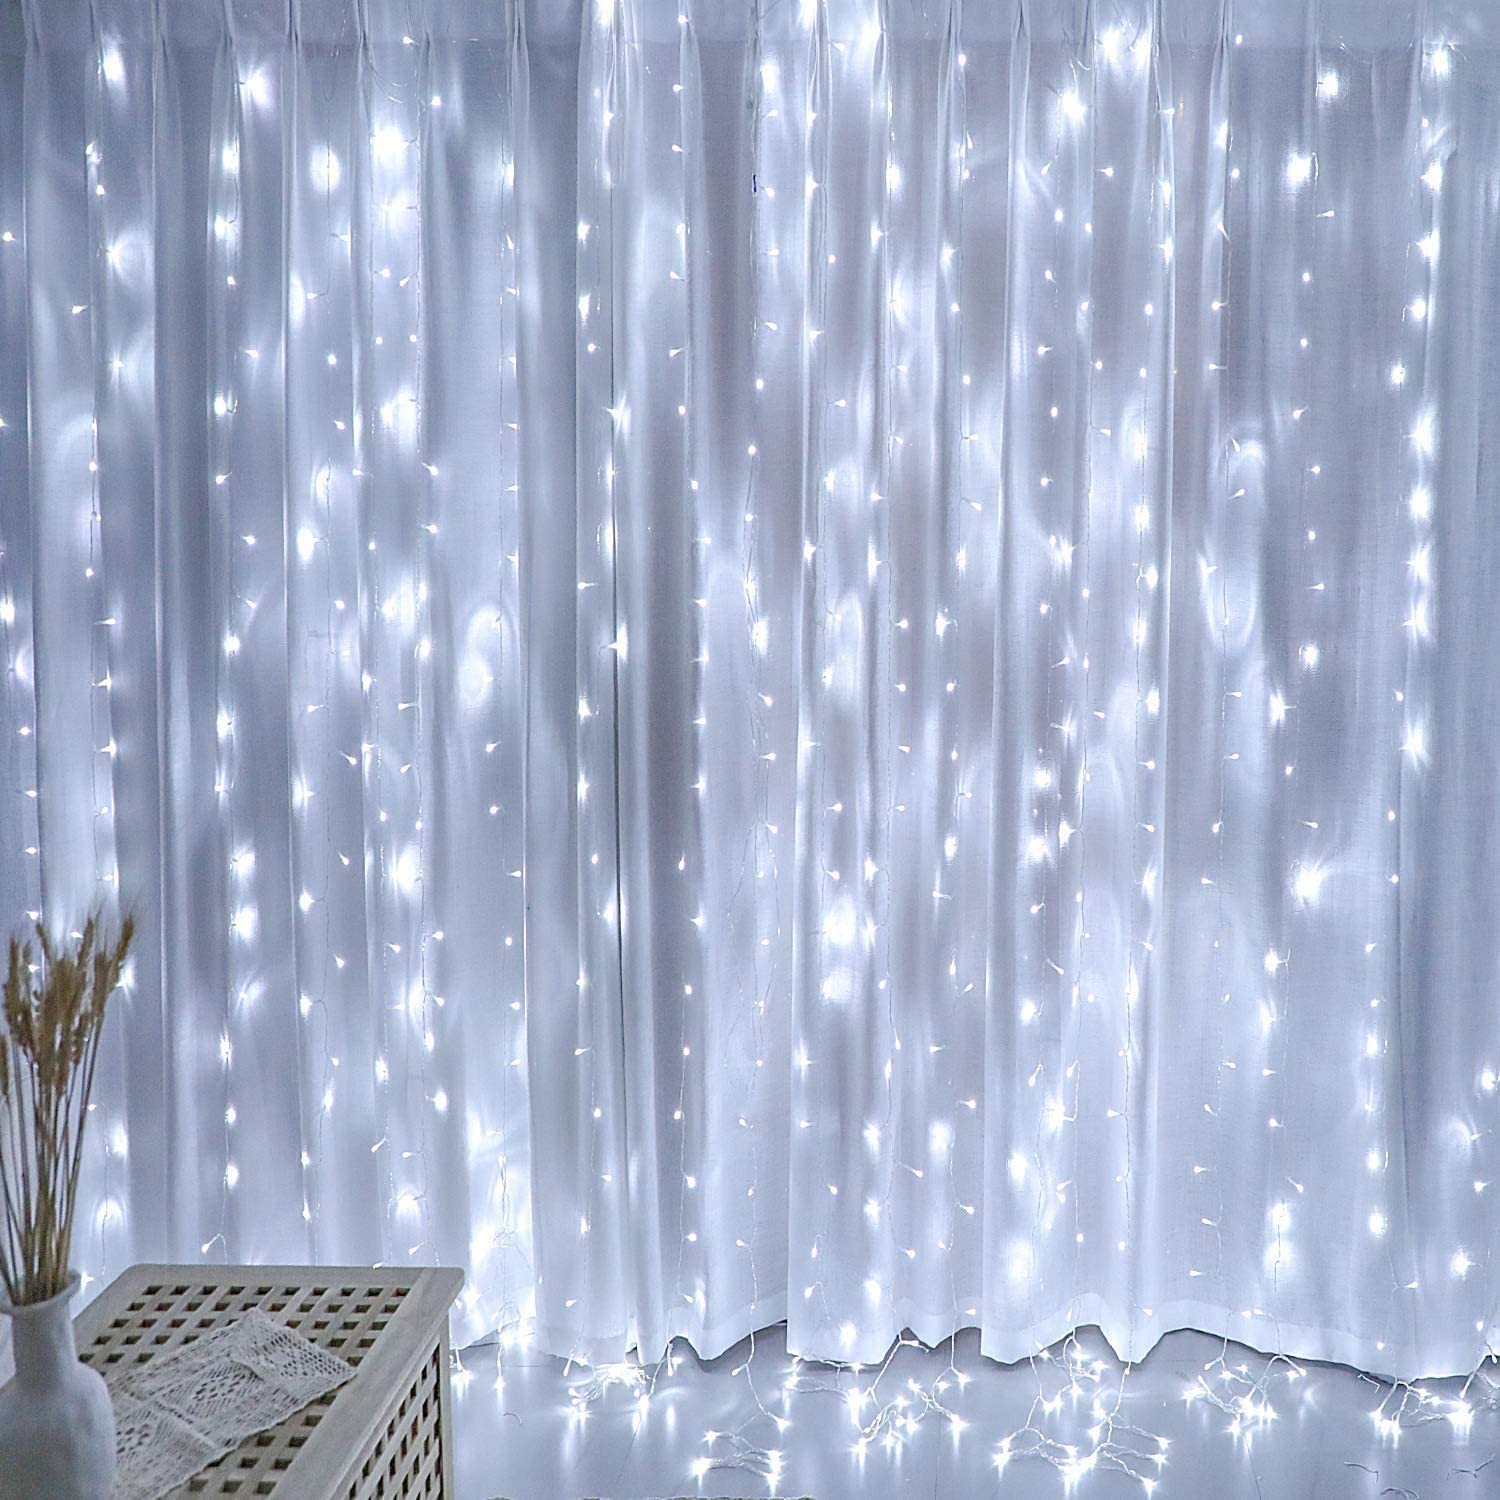 White Curtain Lights, Twinkle Lights for Bedroom, Decorations for Teen Girls, Garden Decor Lights, Romantic Wedding Decor Lights,Fairy String Lights Indoor, Party Birthday Christmas Decorations